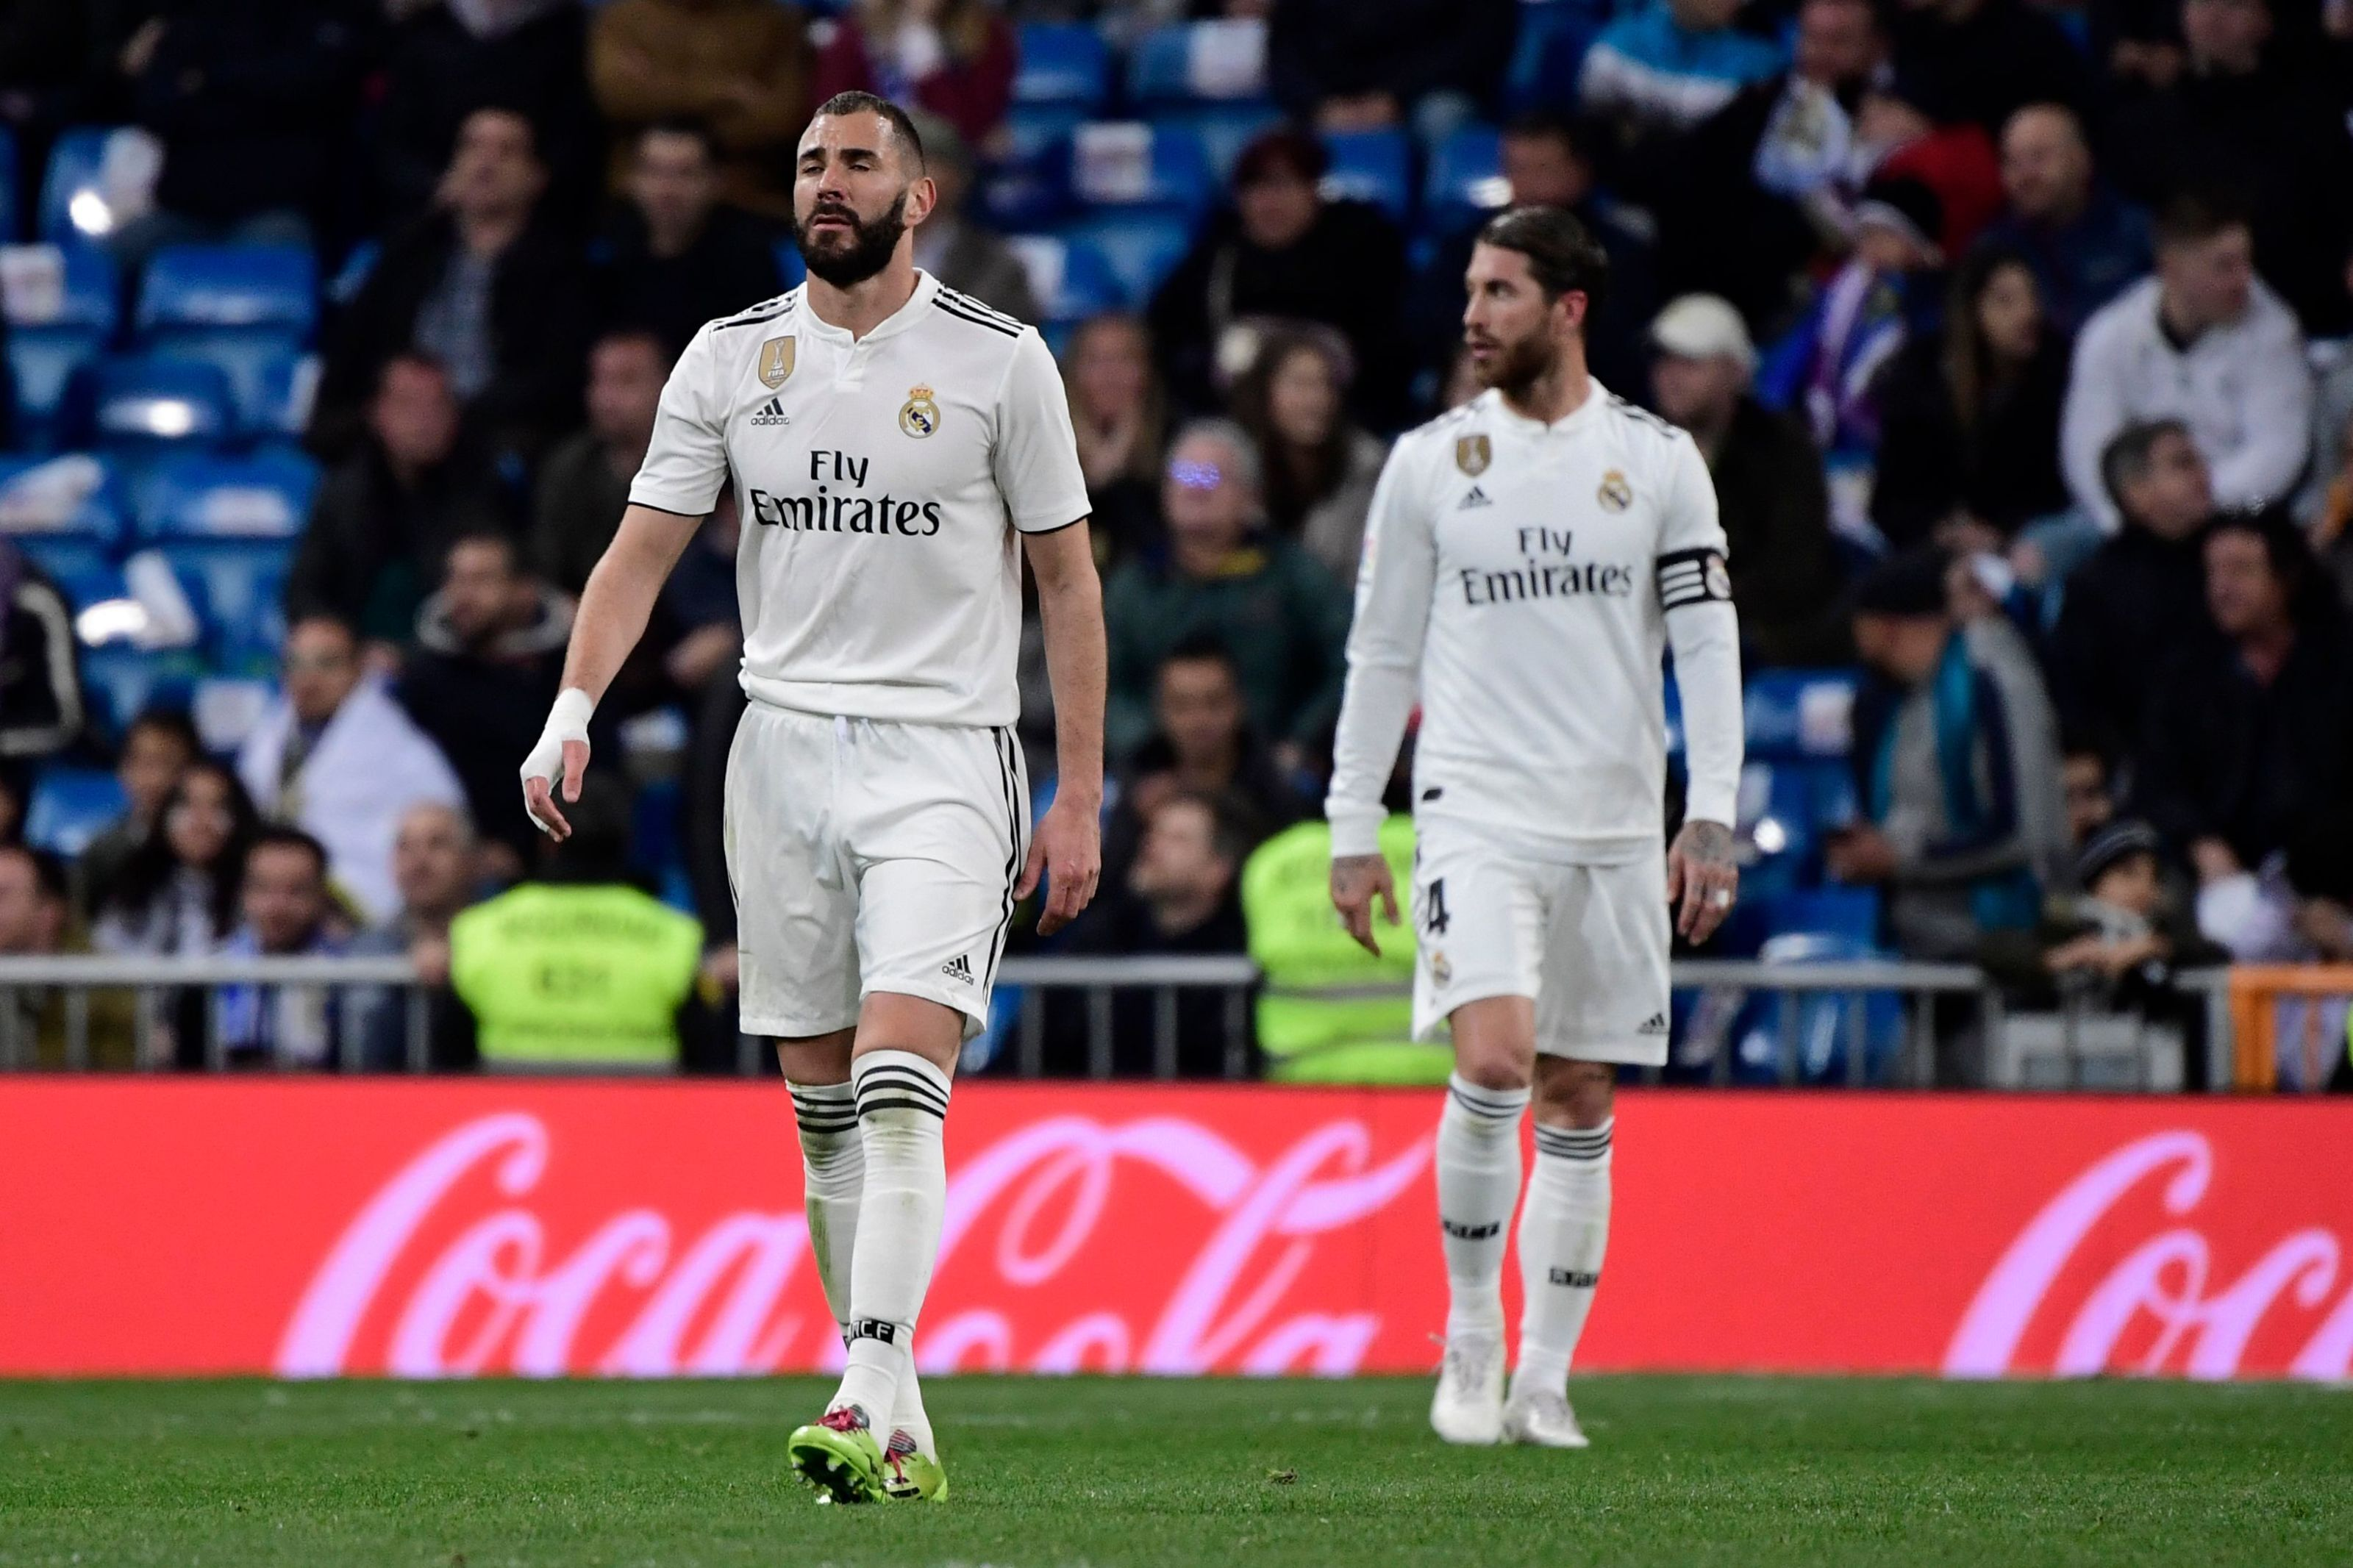 Real Madrid: Karim Benzema will return this weekend, Sergio Ramos will play against Betis